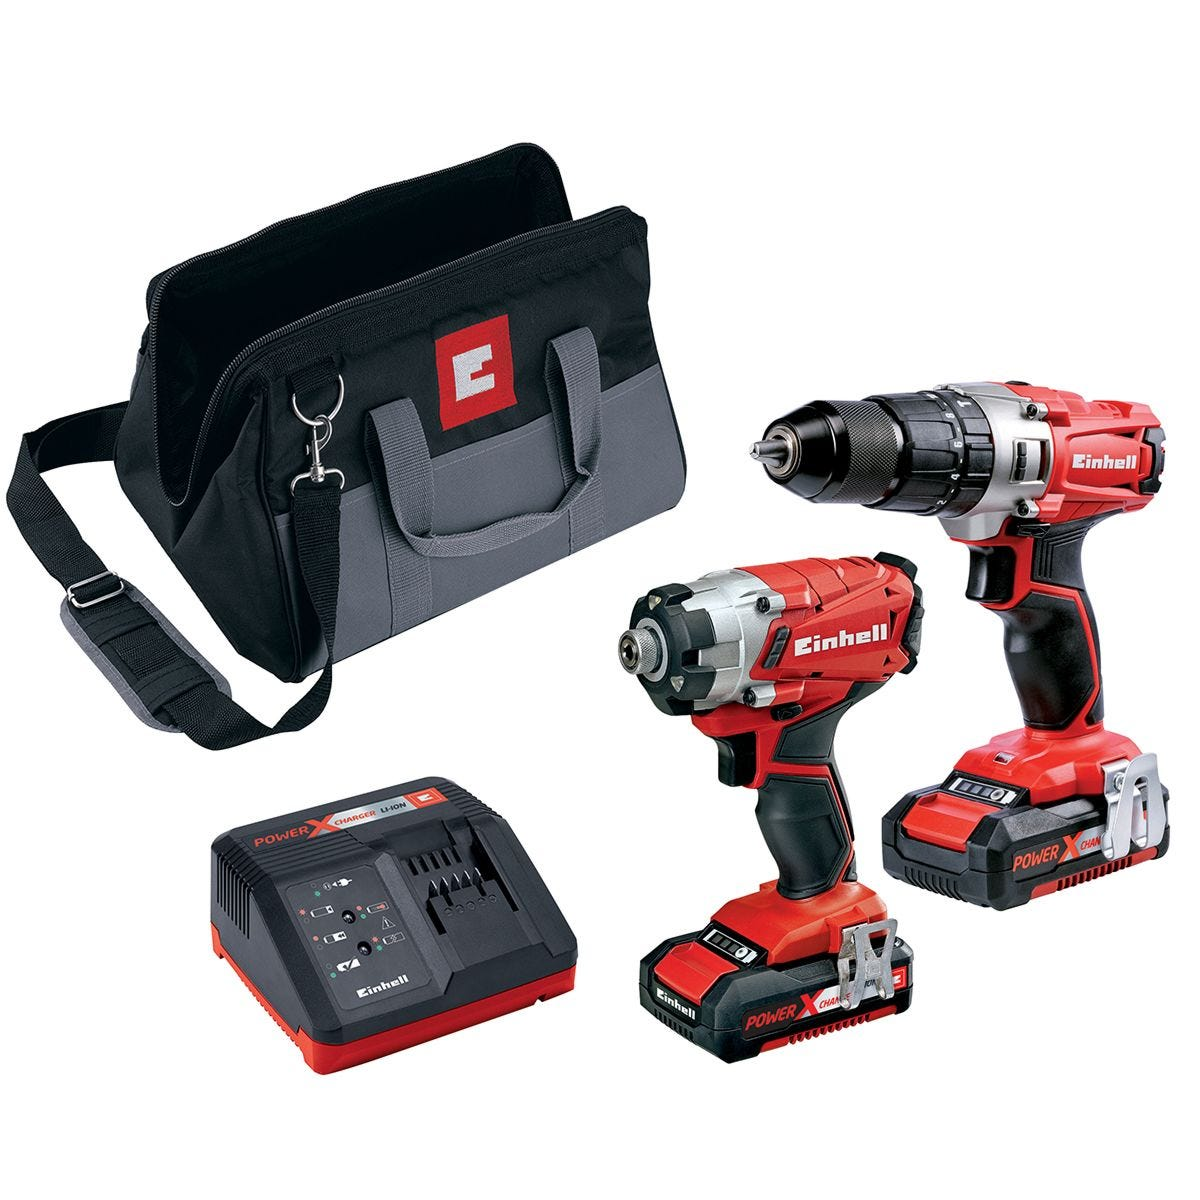 Einhell Power-X-Change 18V Cordless Combi & Impact Driver Twin Pack with 2 x 2.0AH Li-Ion Battery and Tool Bag